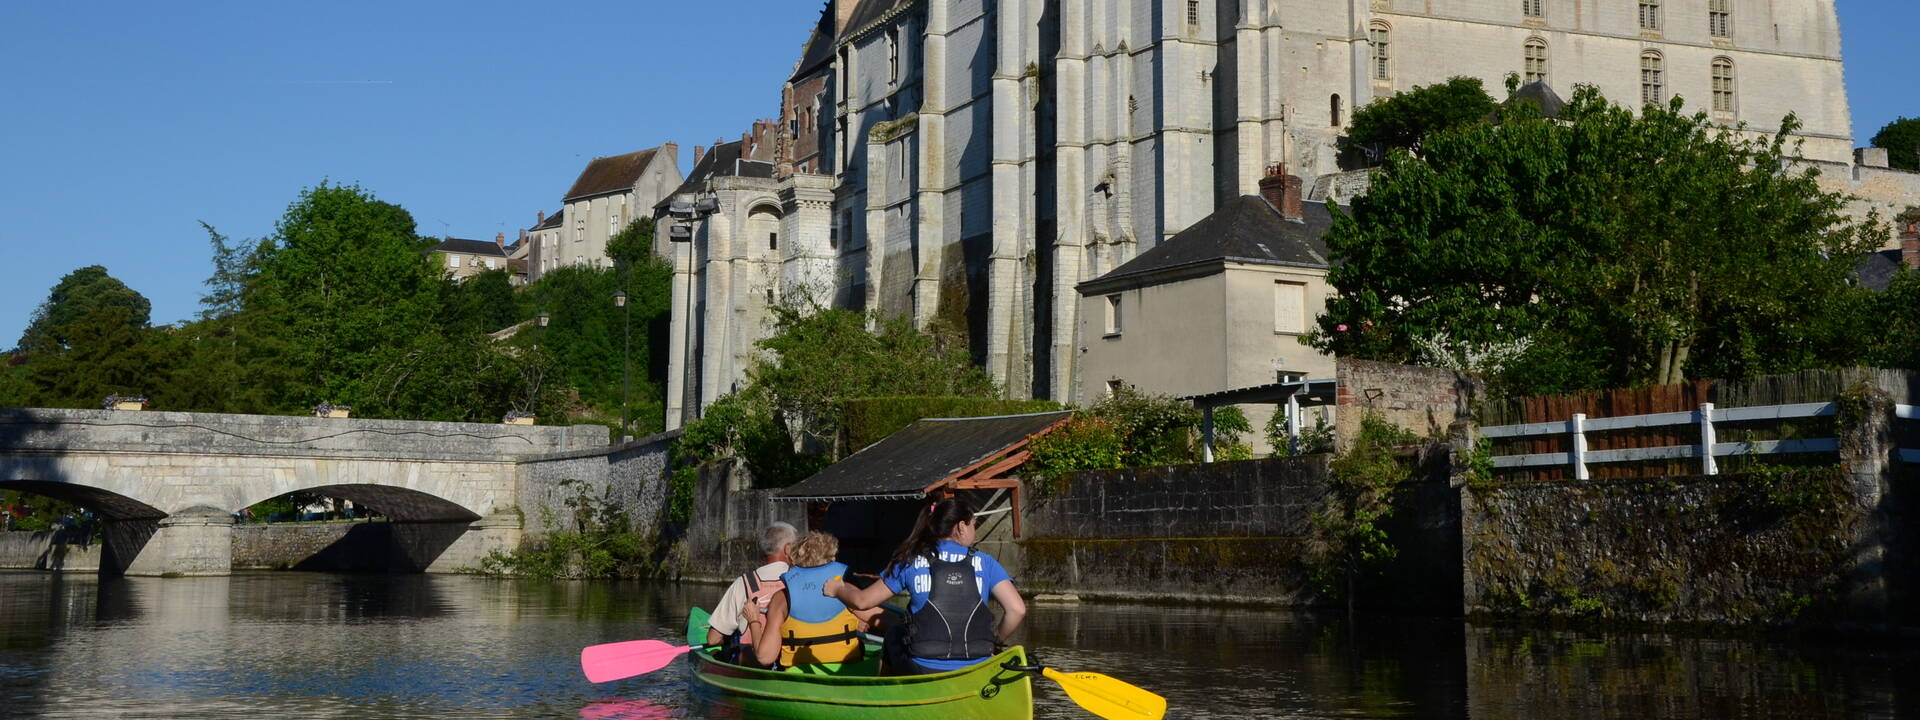 Canoe on the river Loir at the foot of the château